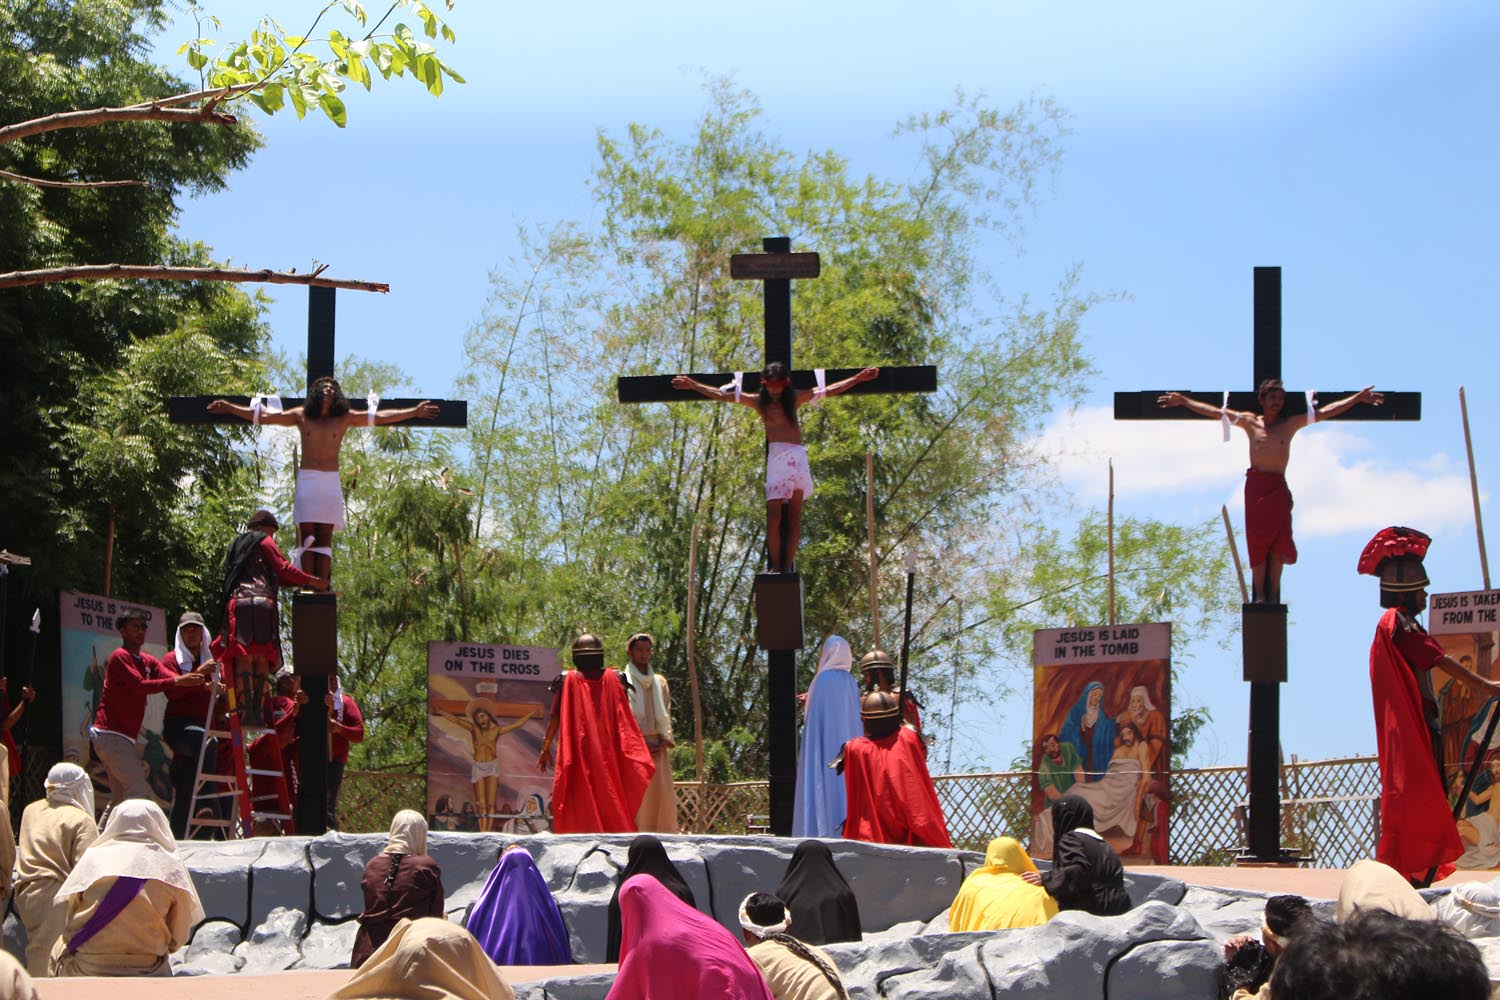 BLOODY PRACTICE. Devotees are nailed to the cross during Good Friday crucifixion reenactment in Sta Lucia, Barangay San Pedro, Pampanga. Photo by Darren Langit